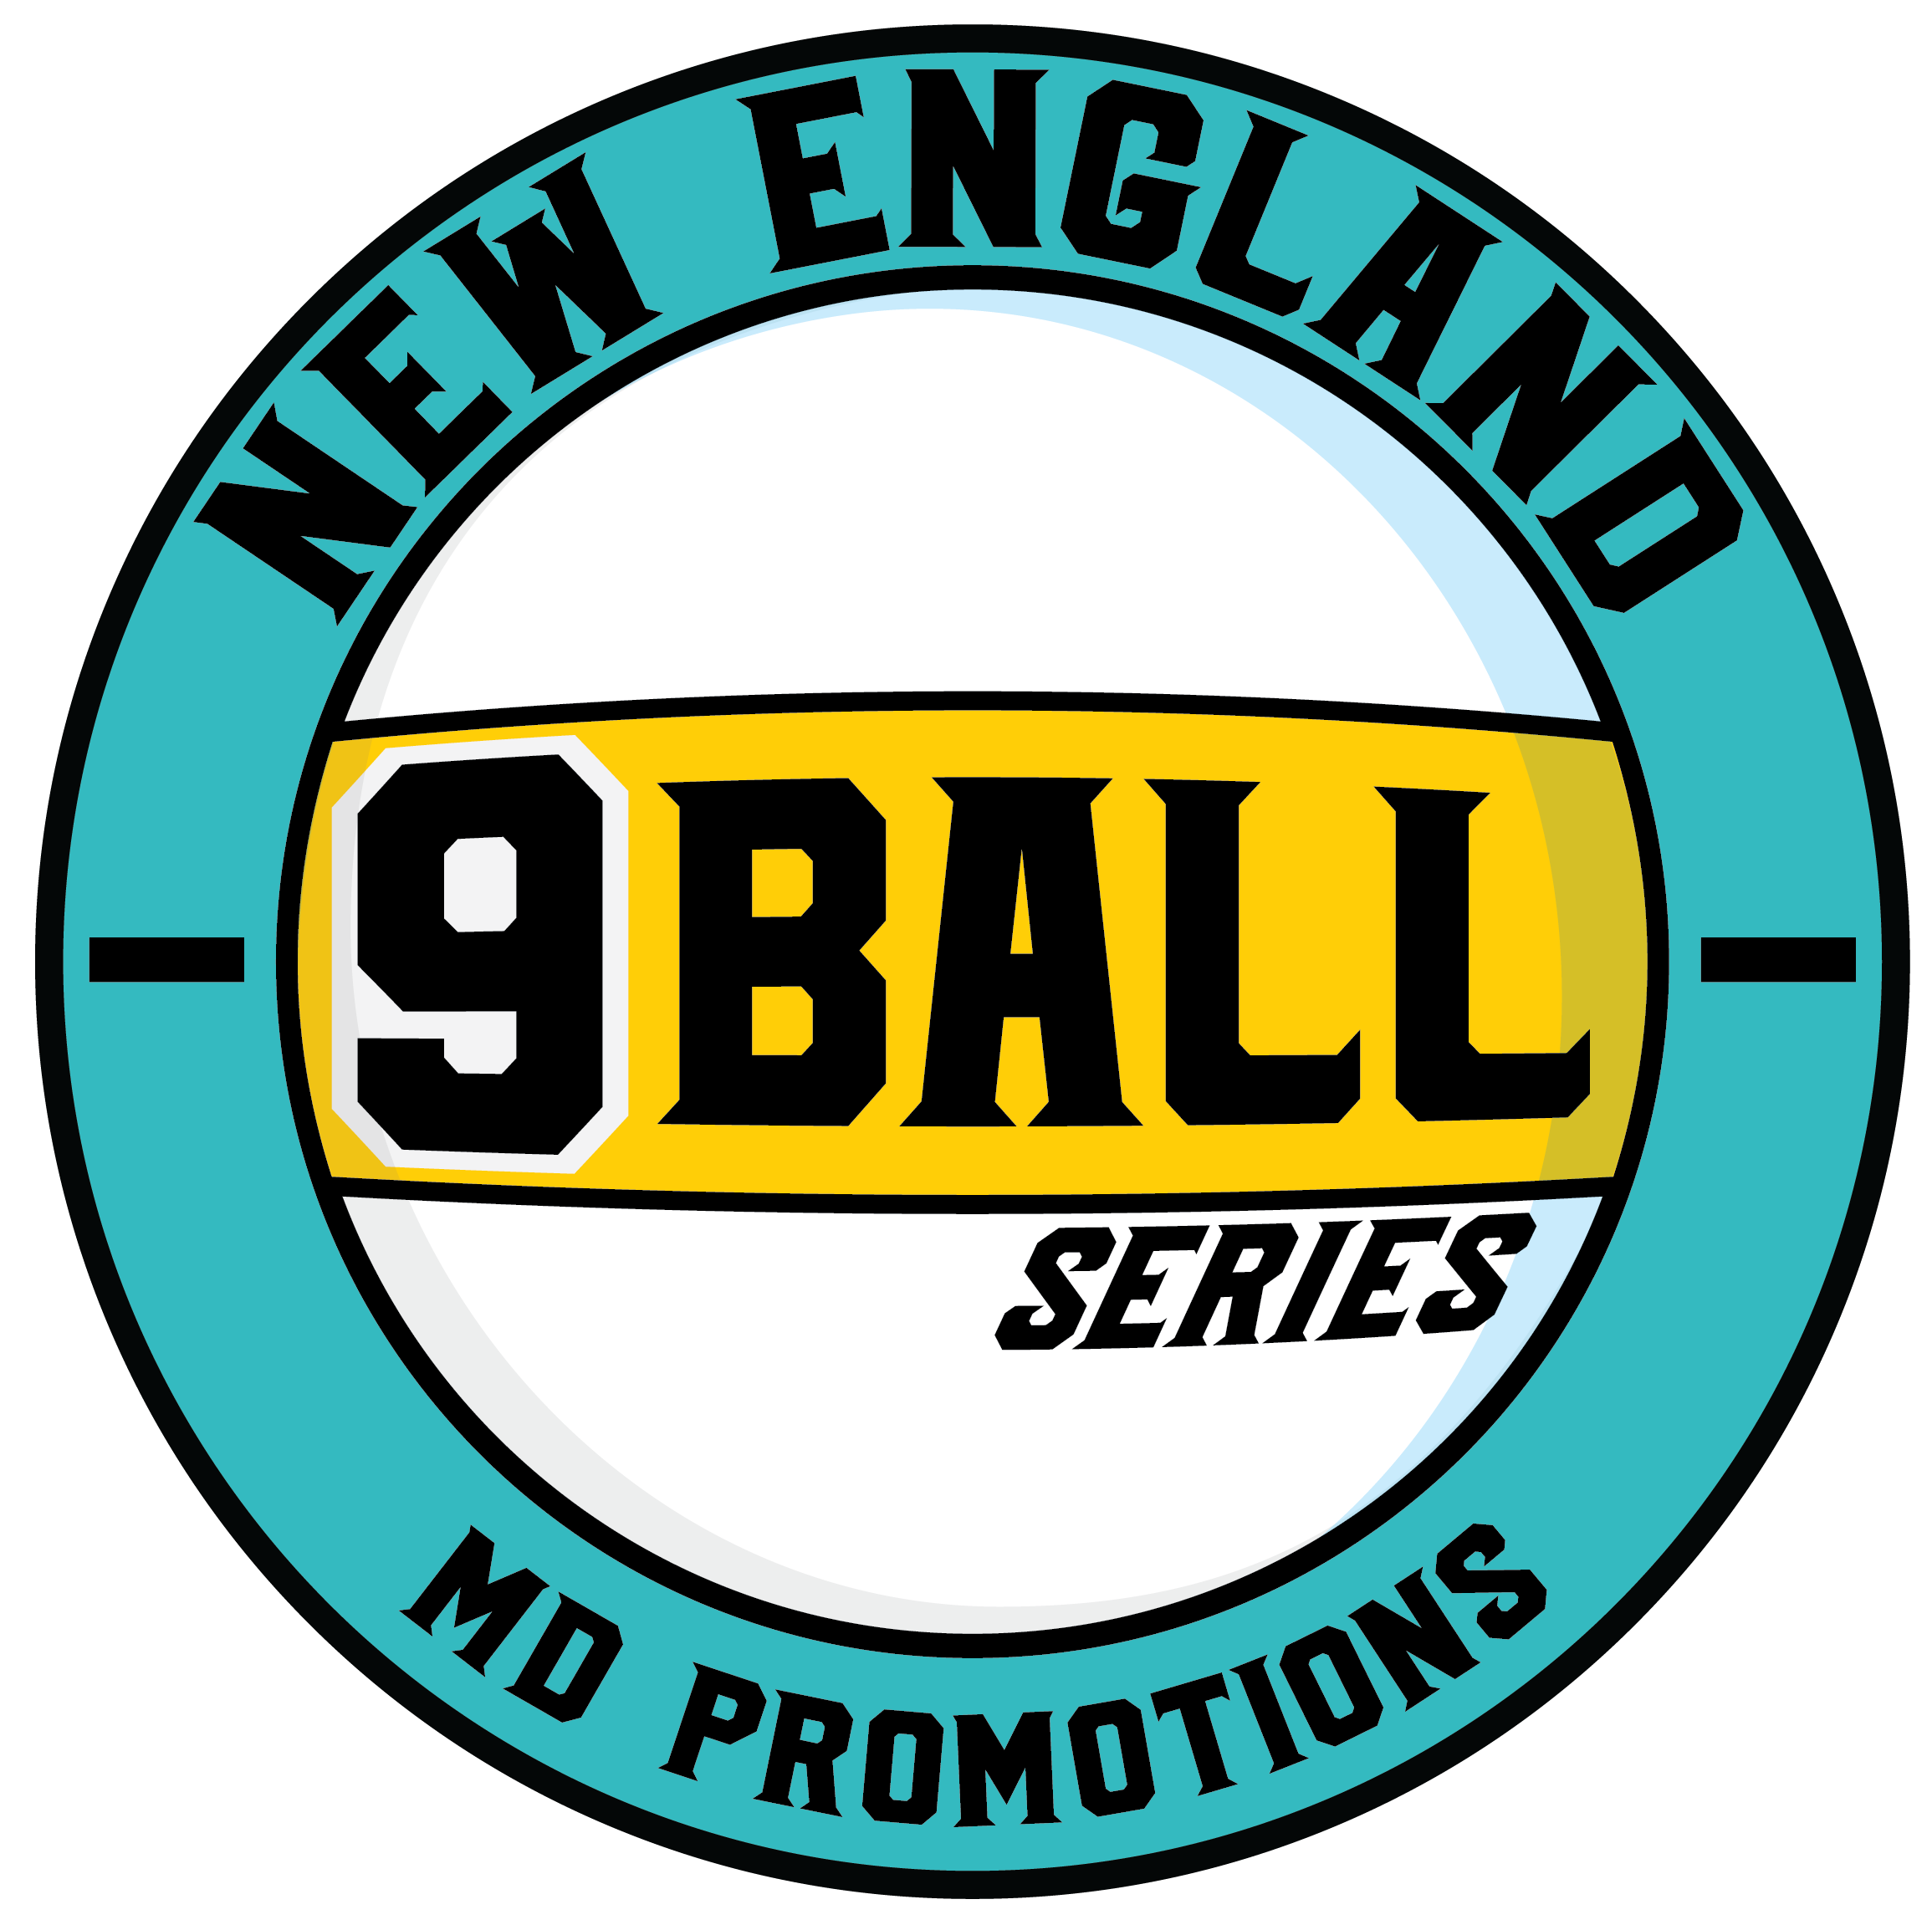 New England 9ball Series